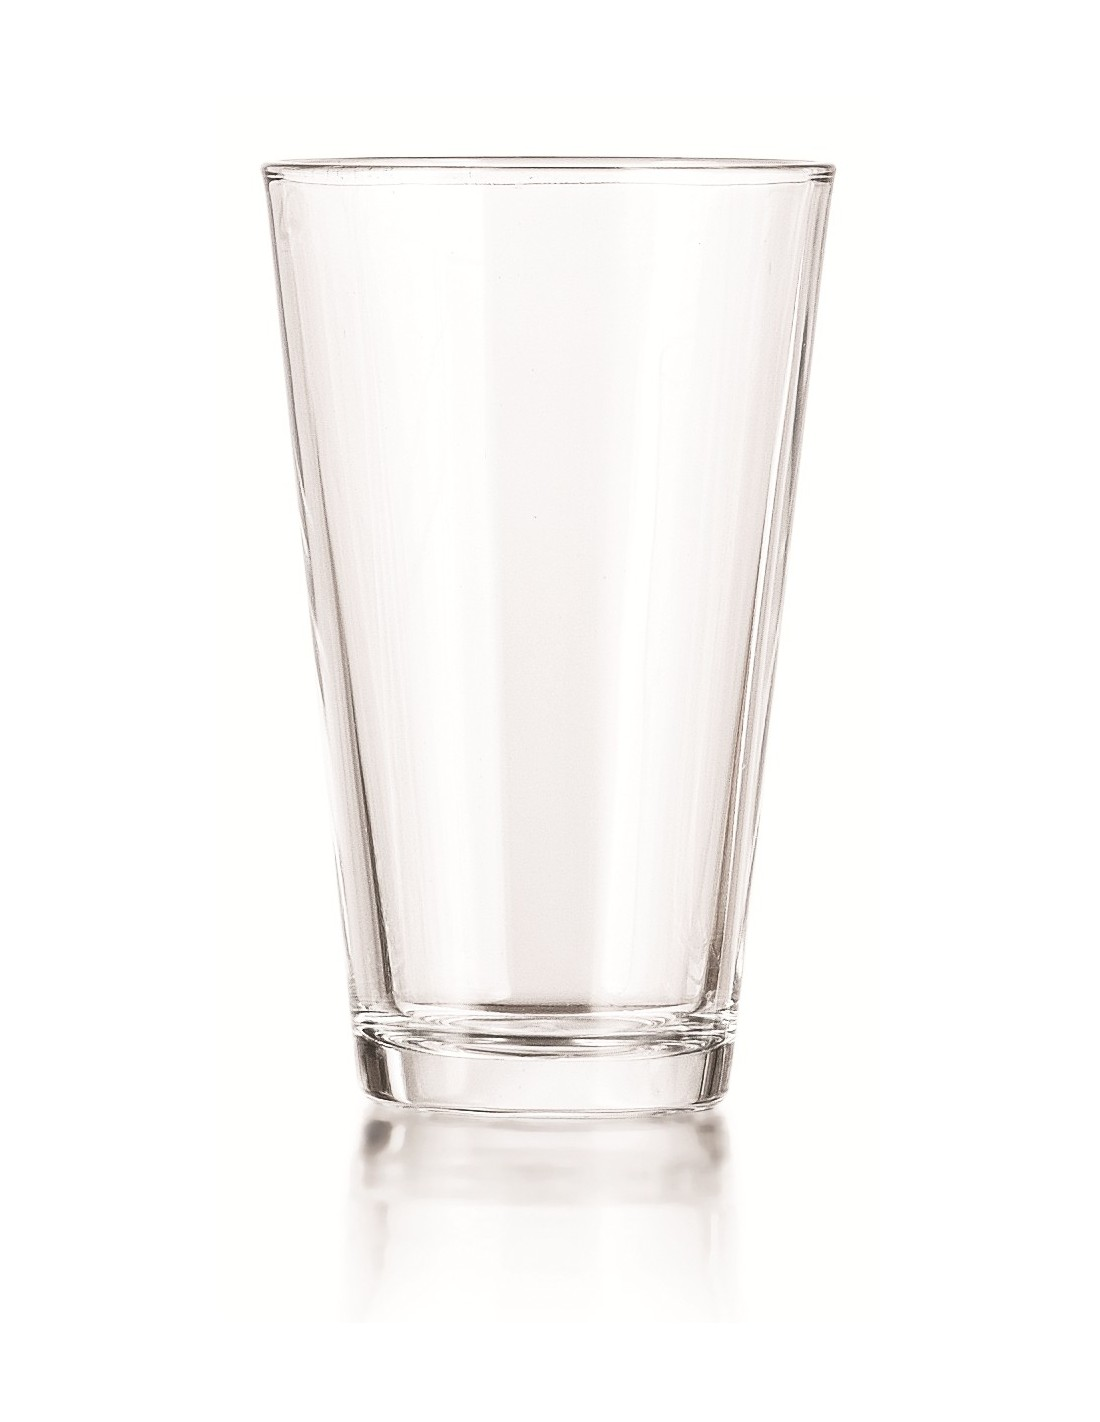 Crisa 105 vaso hb cavana tumbler 414 ml 14 oz for Vasos de colores de cristal